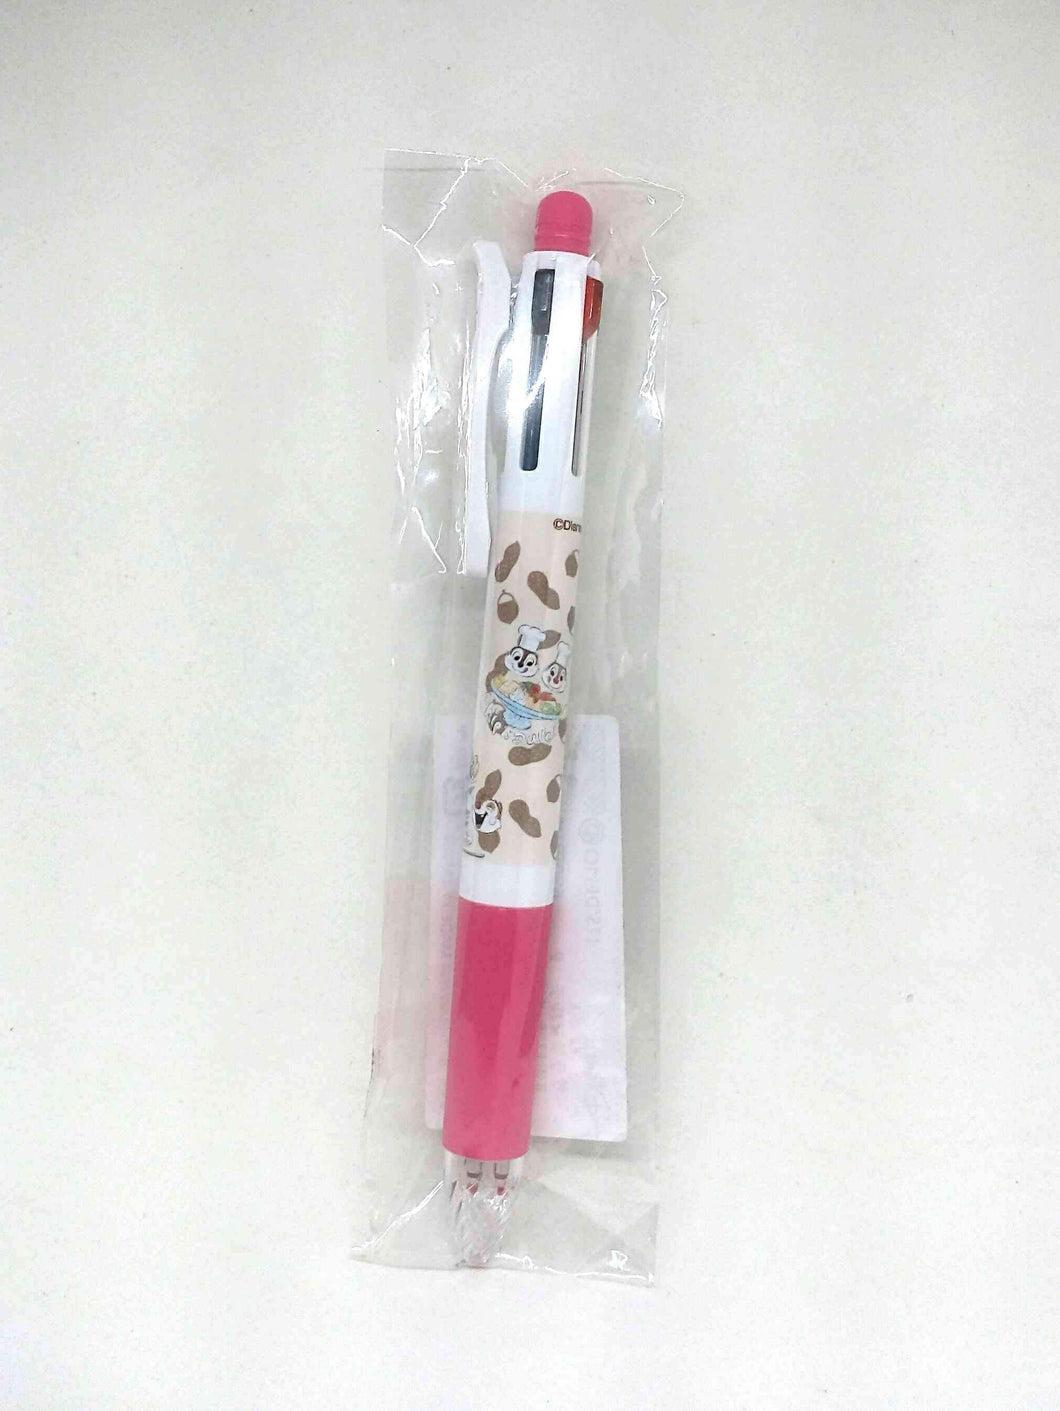 Sarasa Multi Pen Chip And Dale Pink 4+1